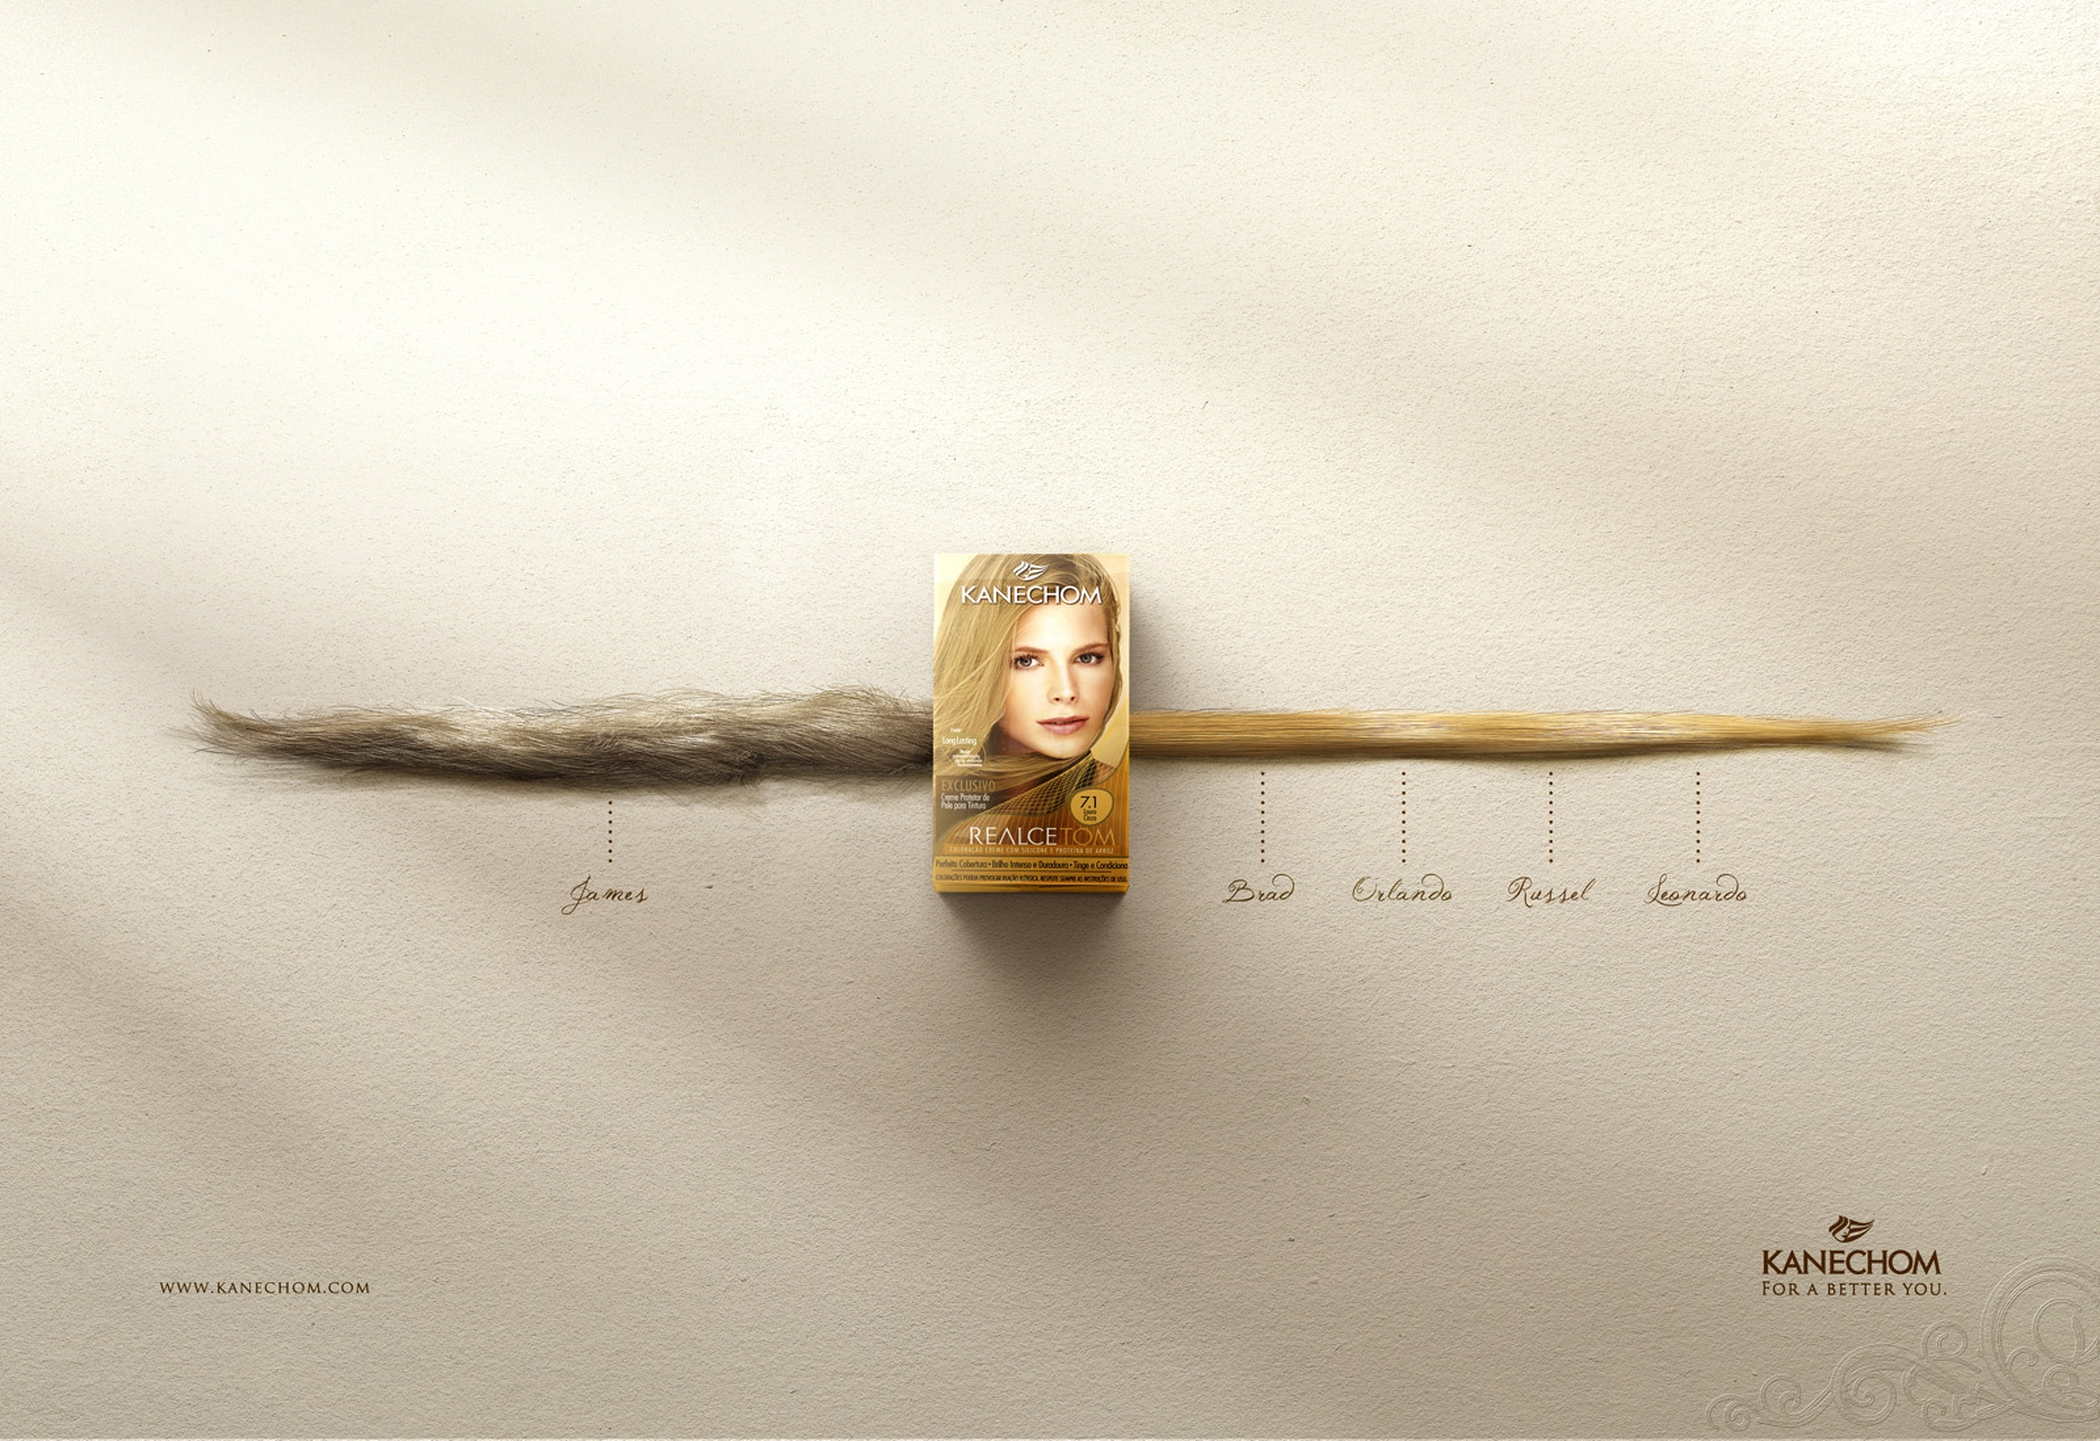 30 Fresh and Creative Advertisements - aviatstudios.com